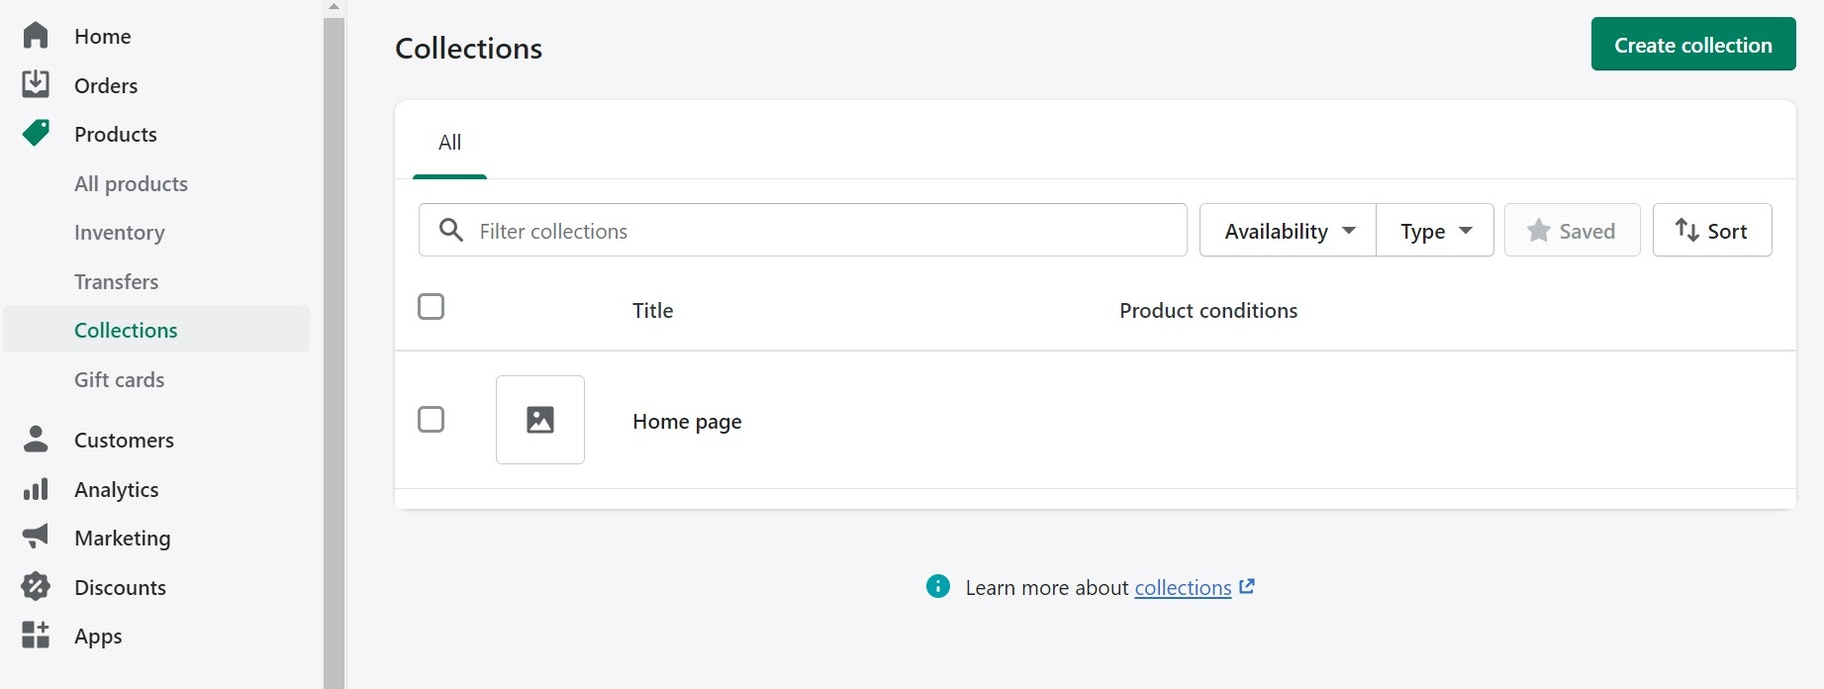 create collections in shopify